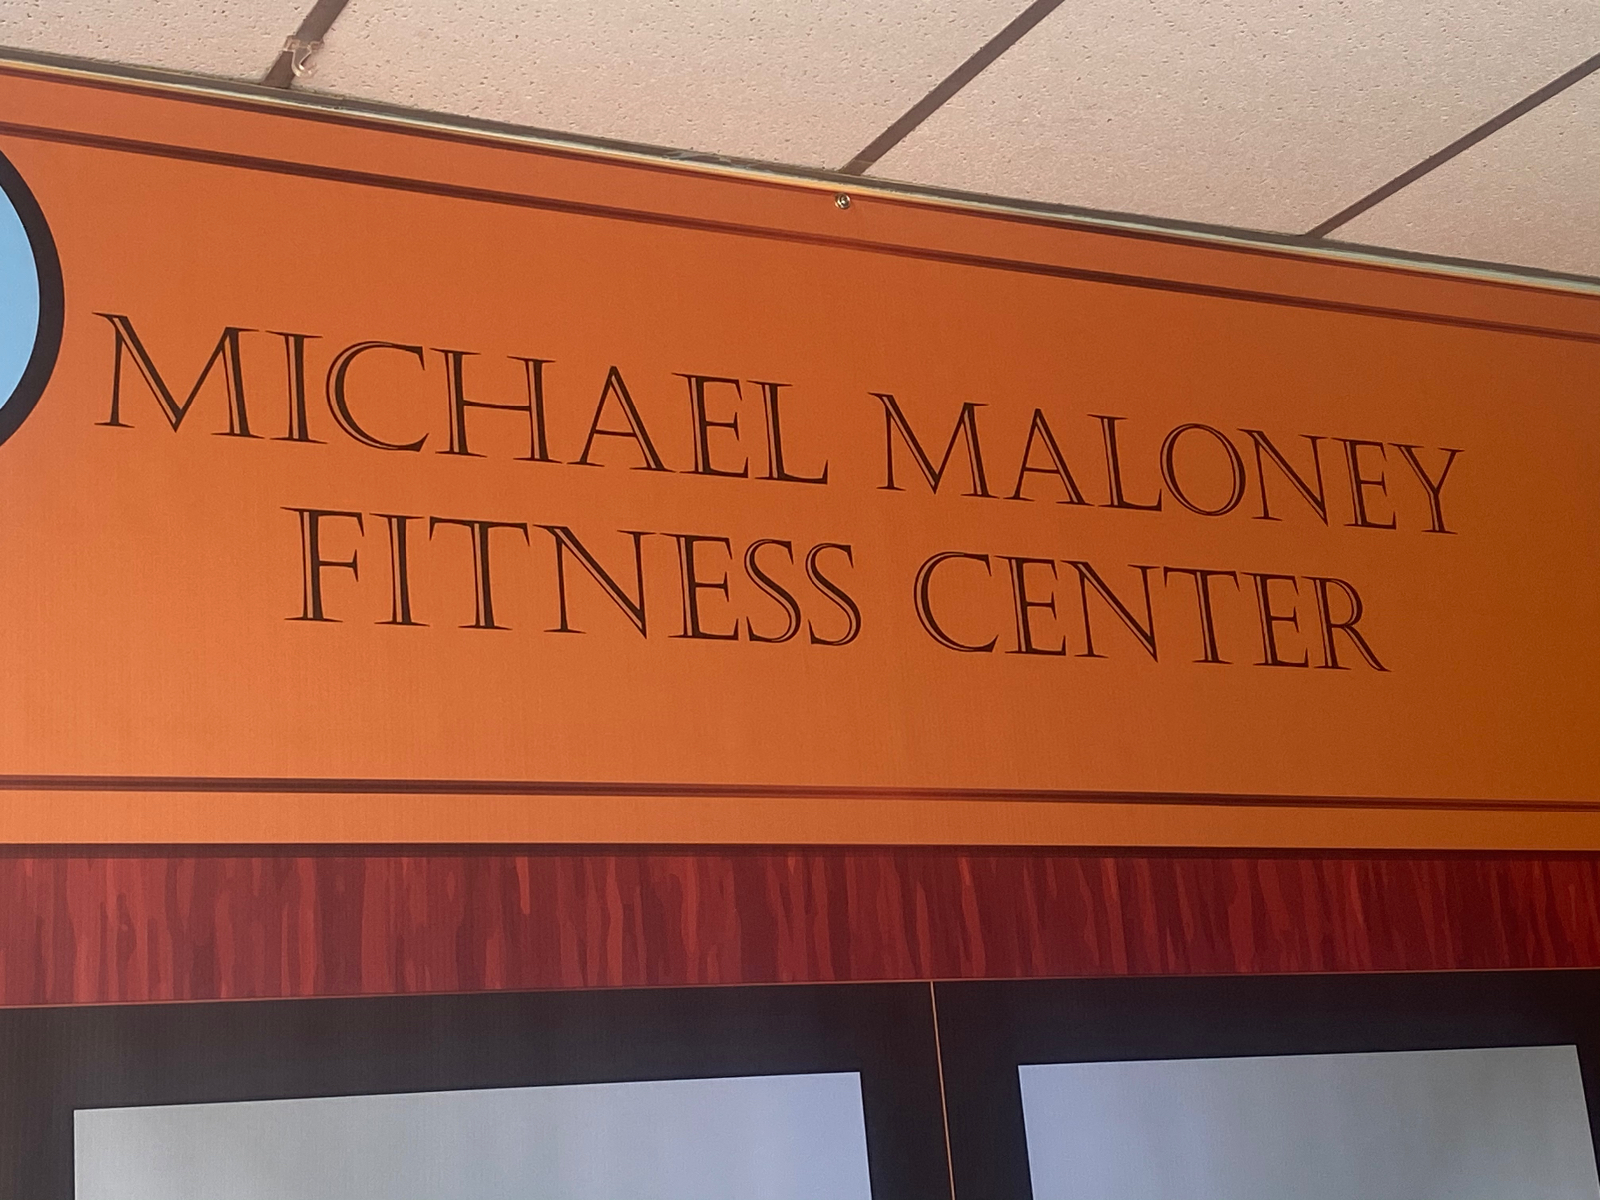 Construction Moving Along with the Michael Maloney Fitness Center